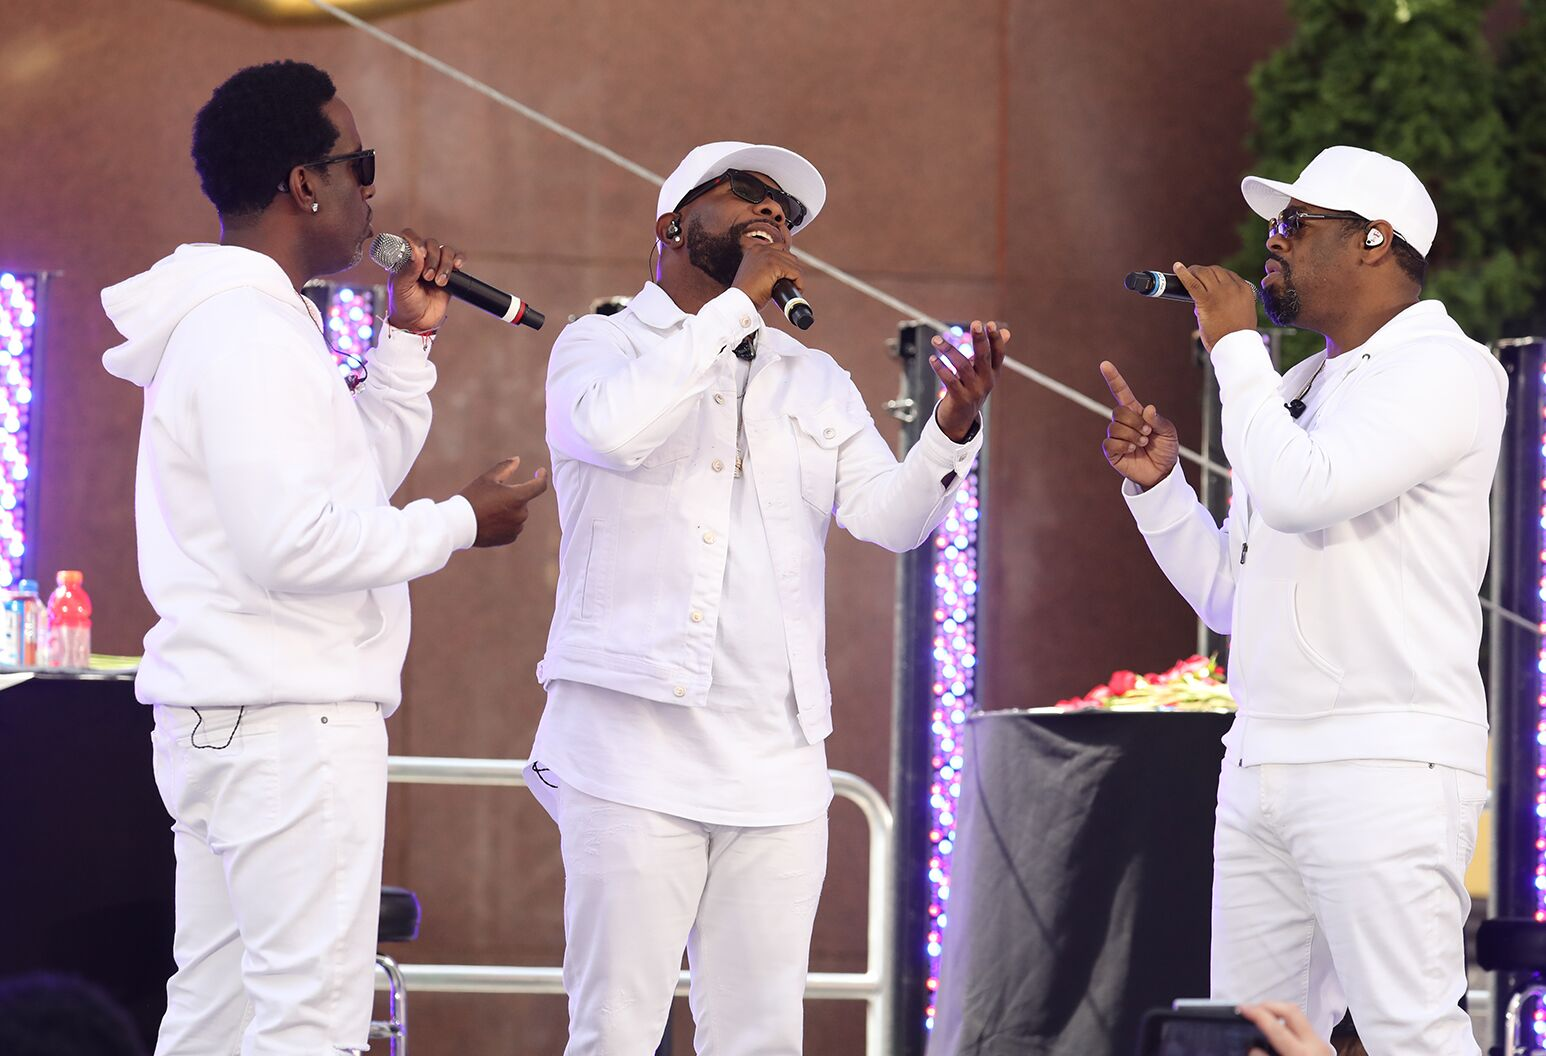 Boyz II Men performing at Side by Side